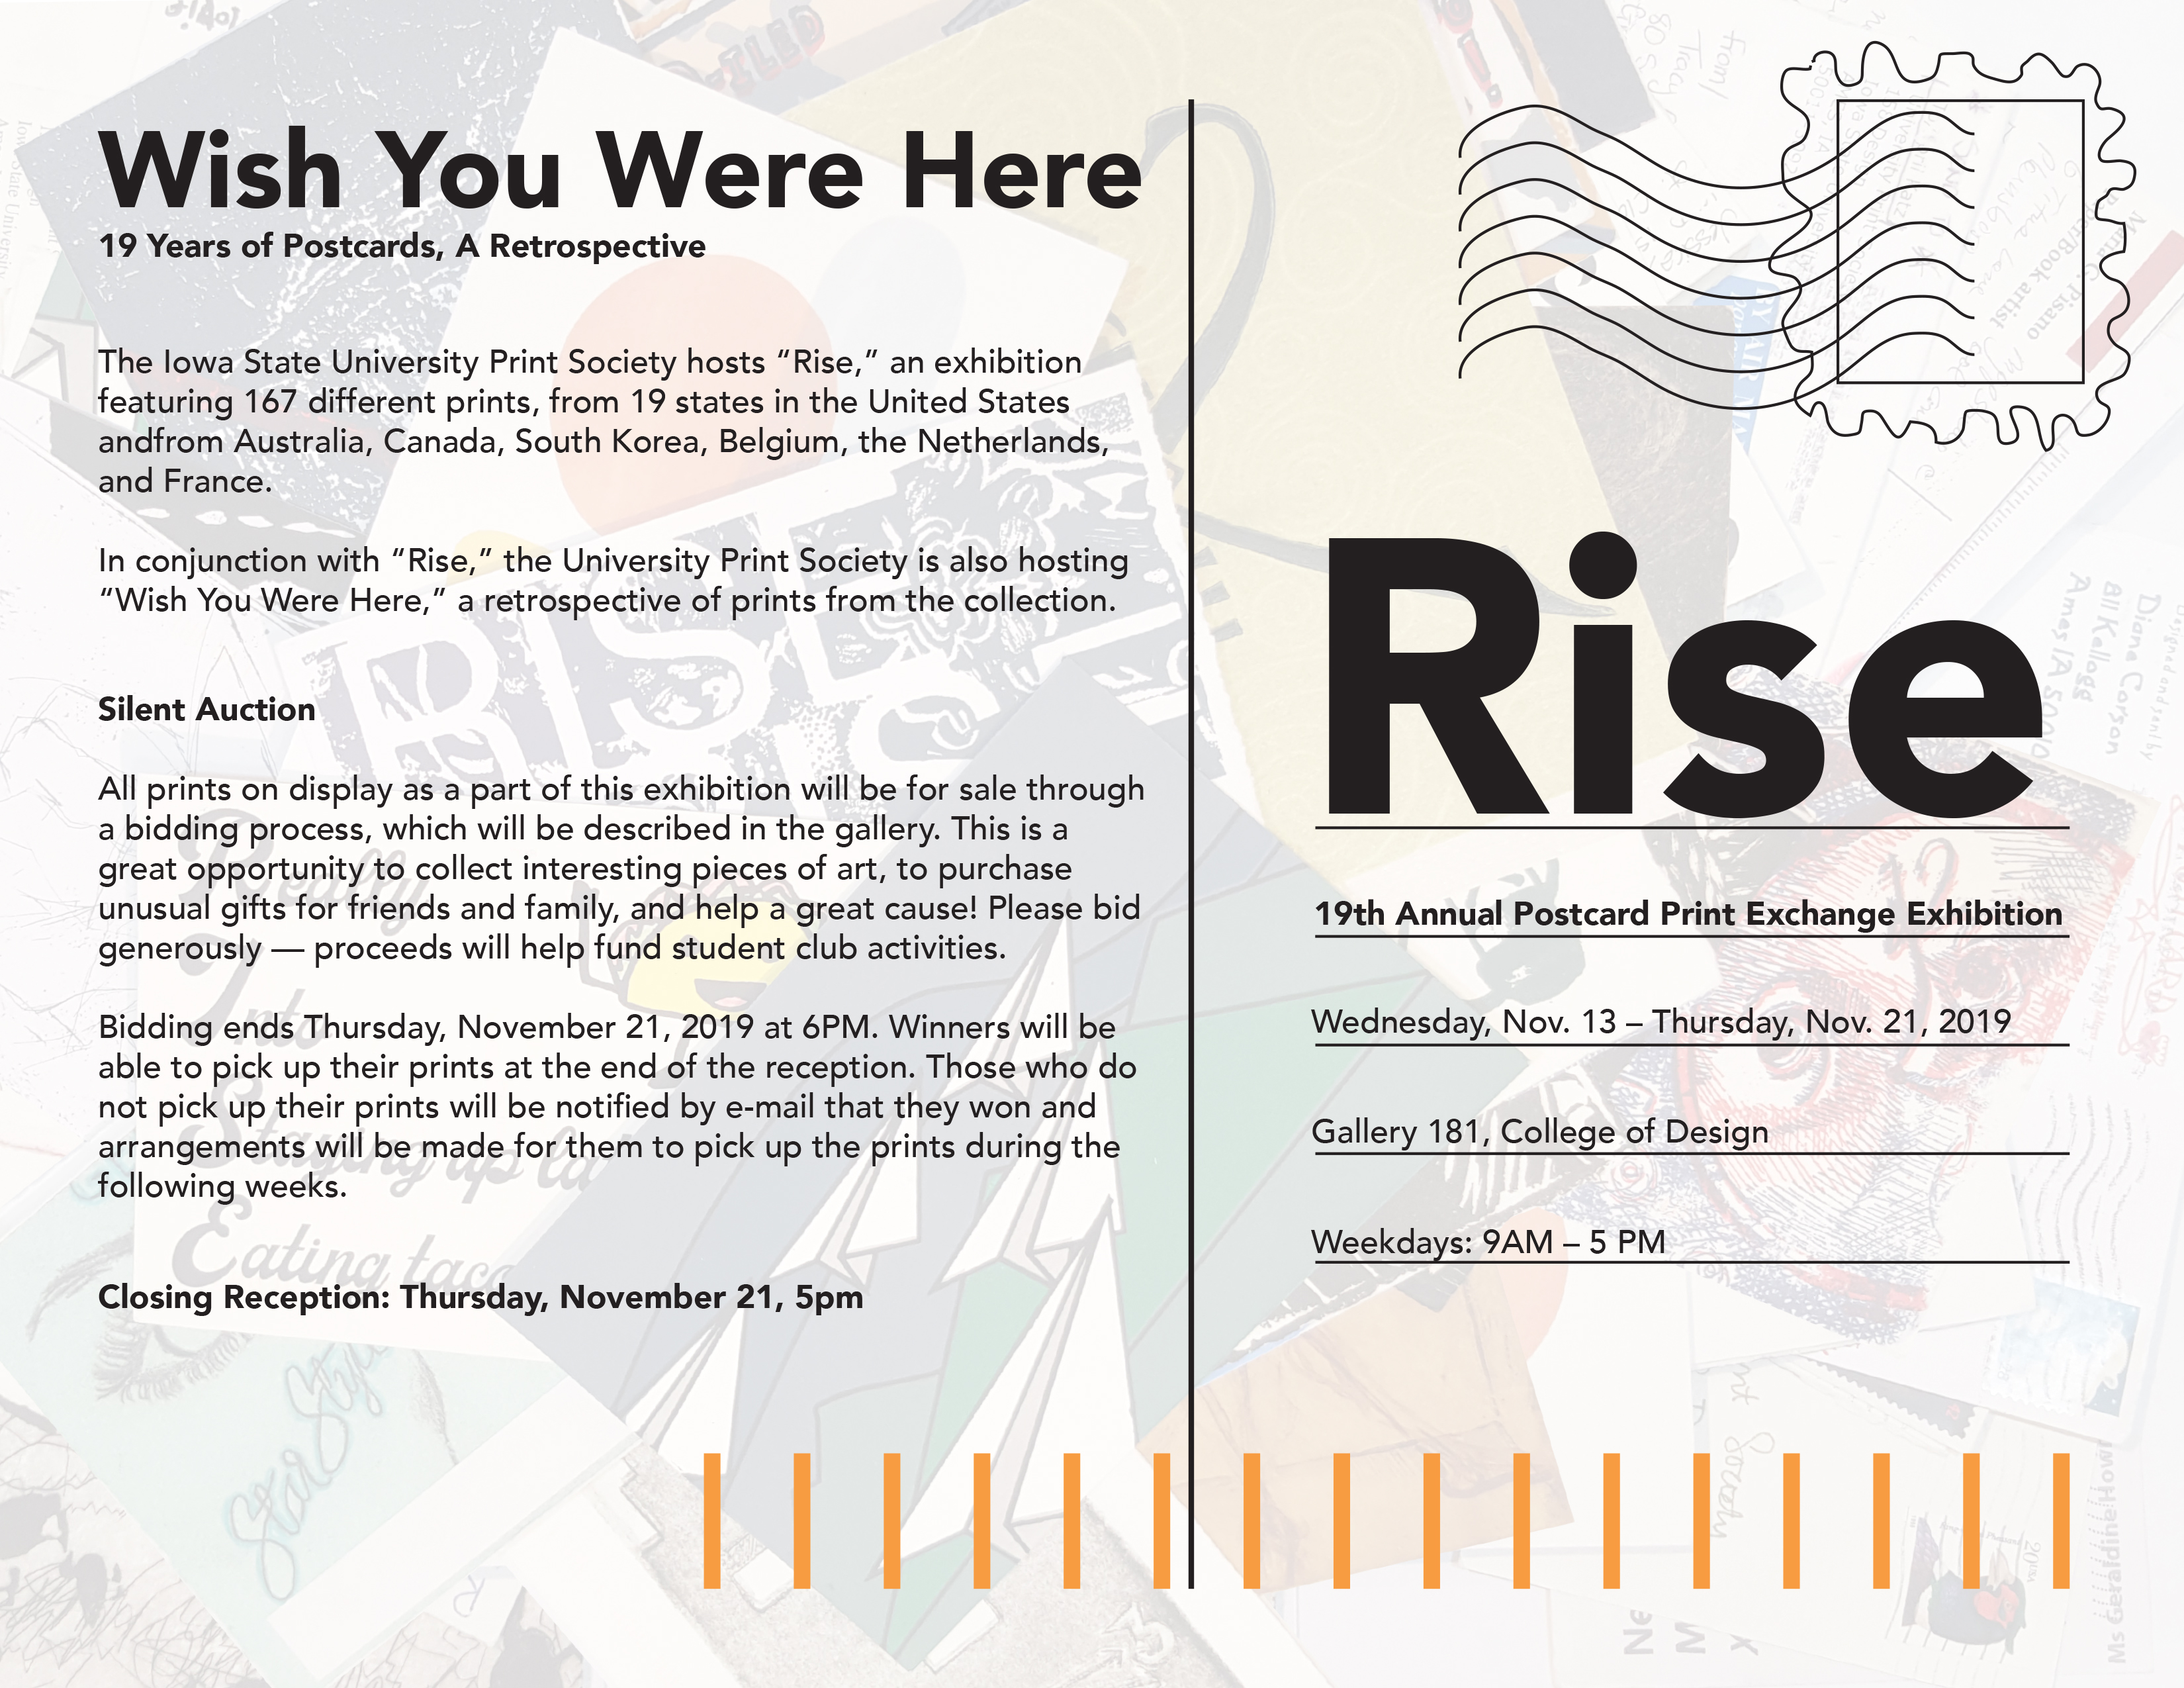 Rise Exhibition Poster